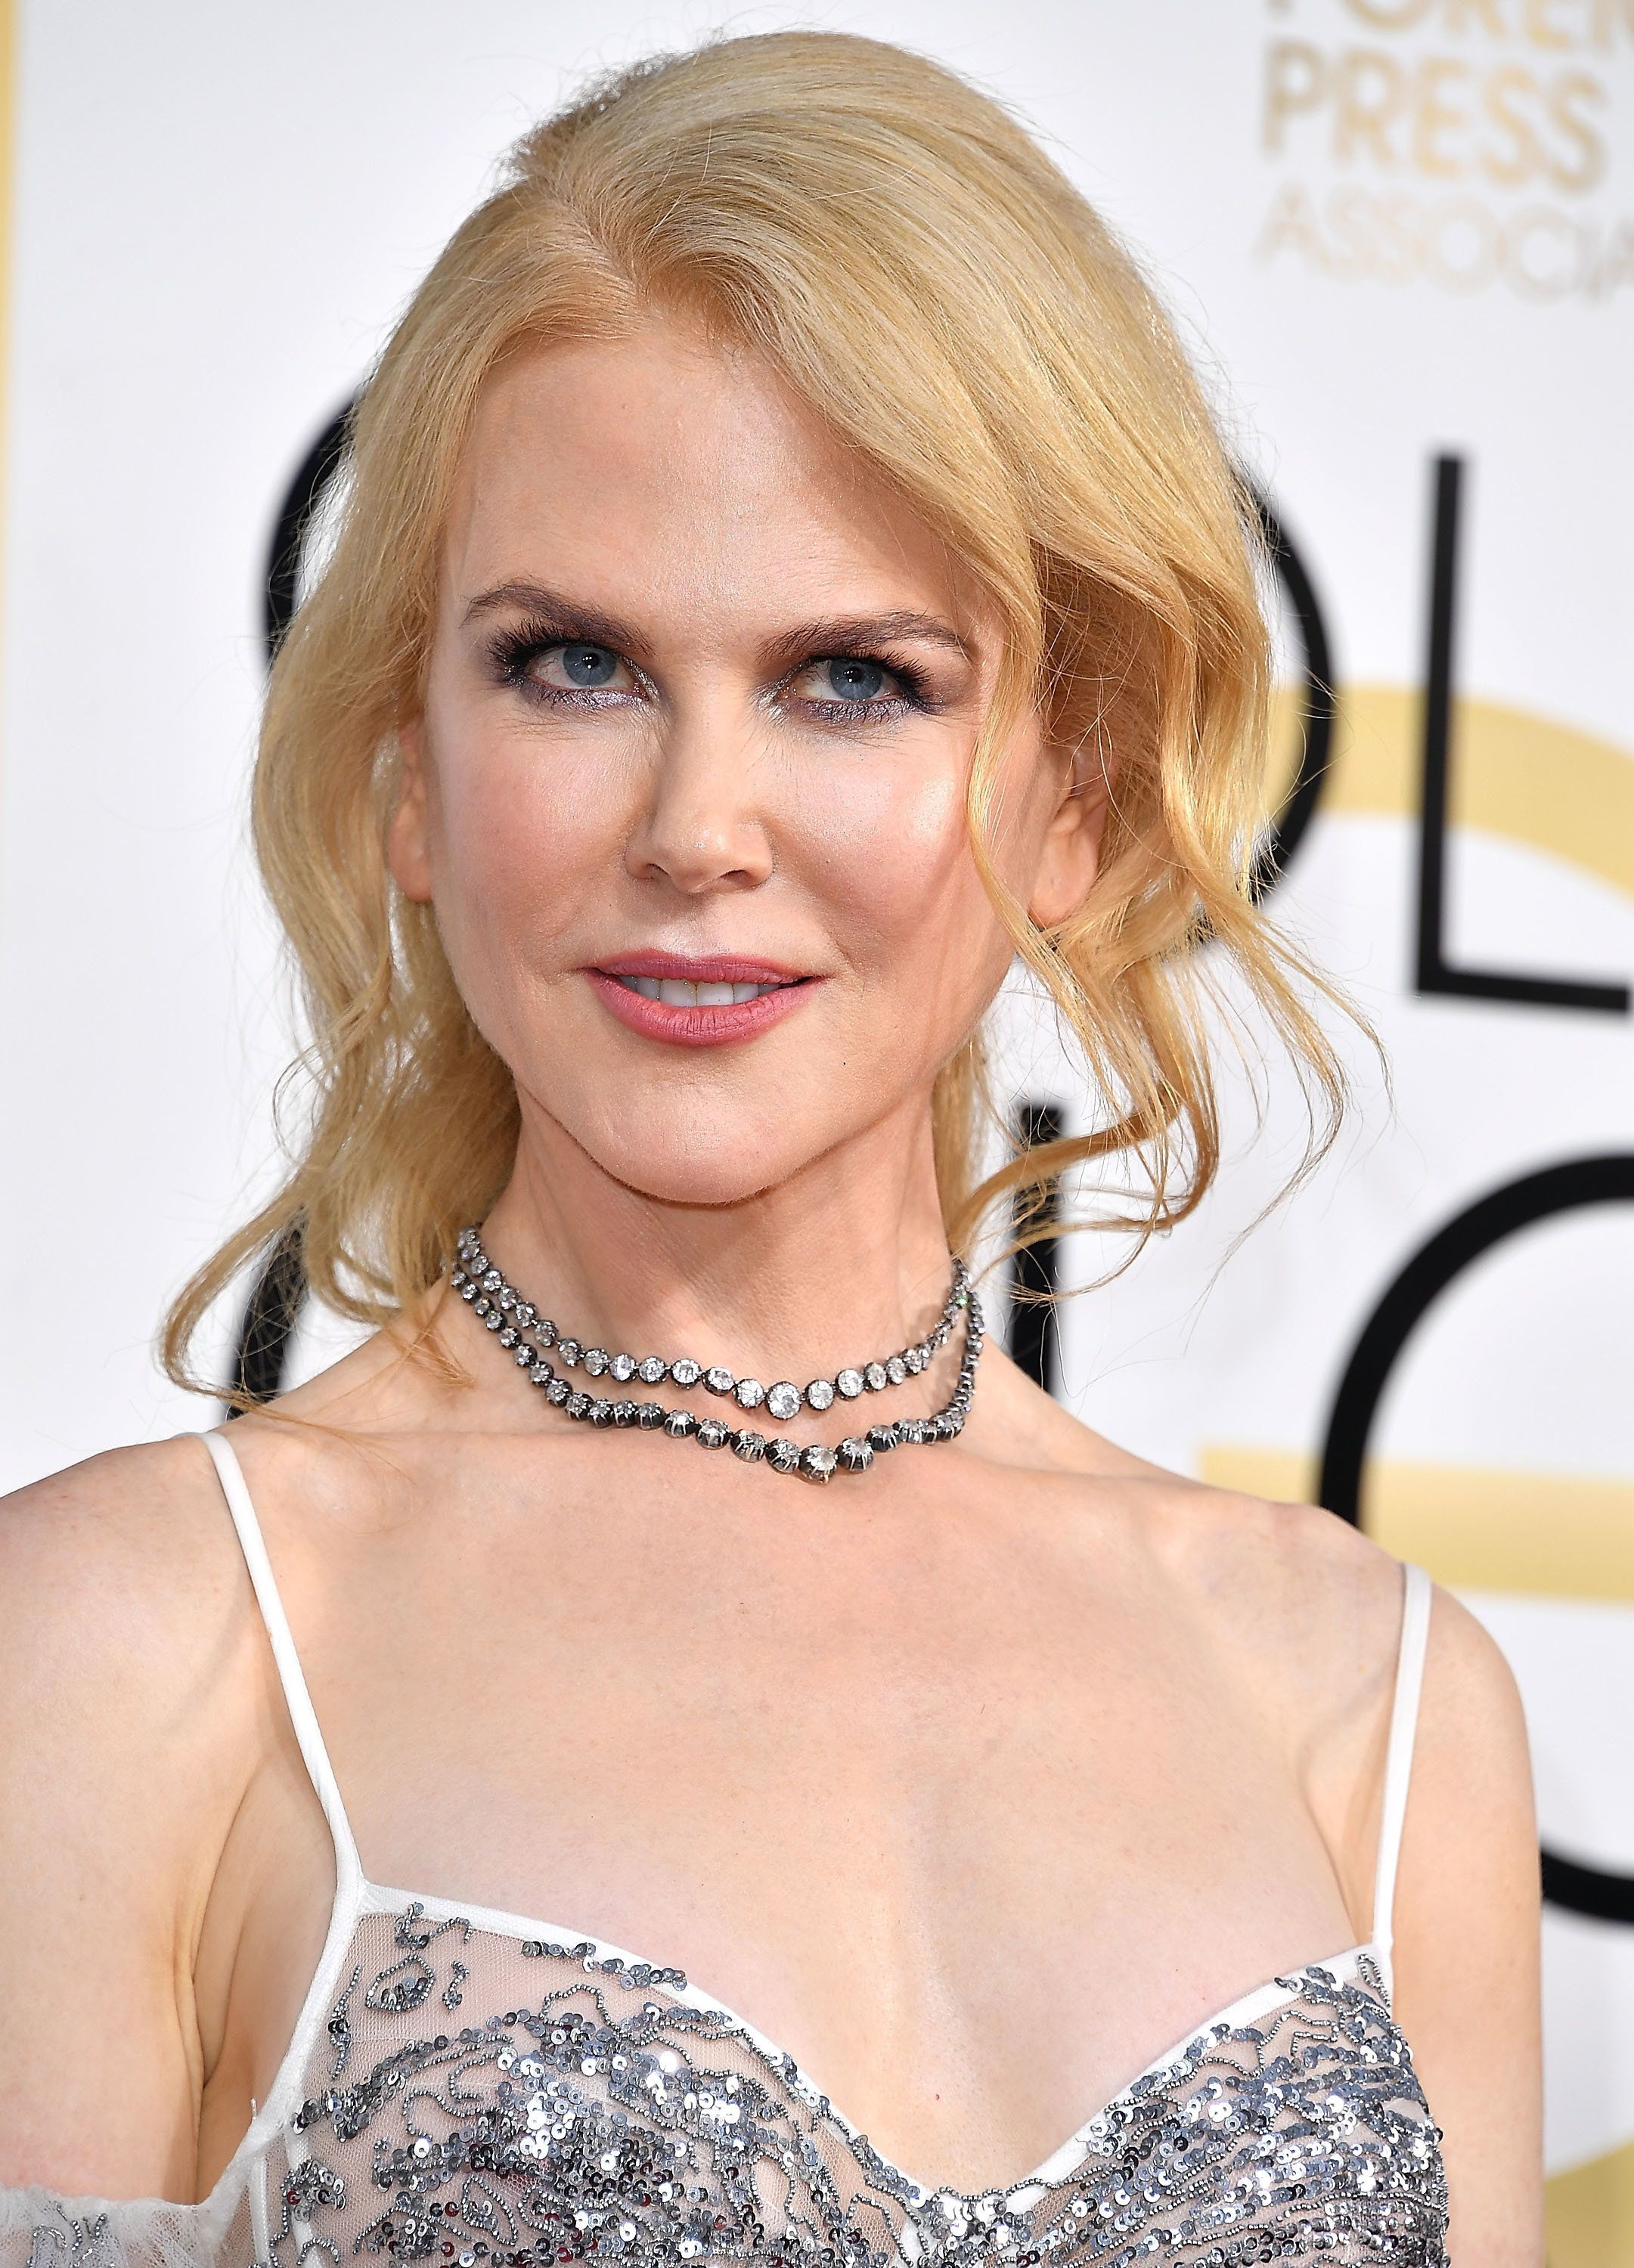 Nicole Kidman arrives at the 74th Annual Golden Globe